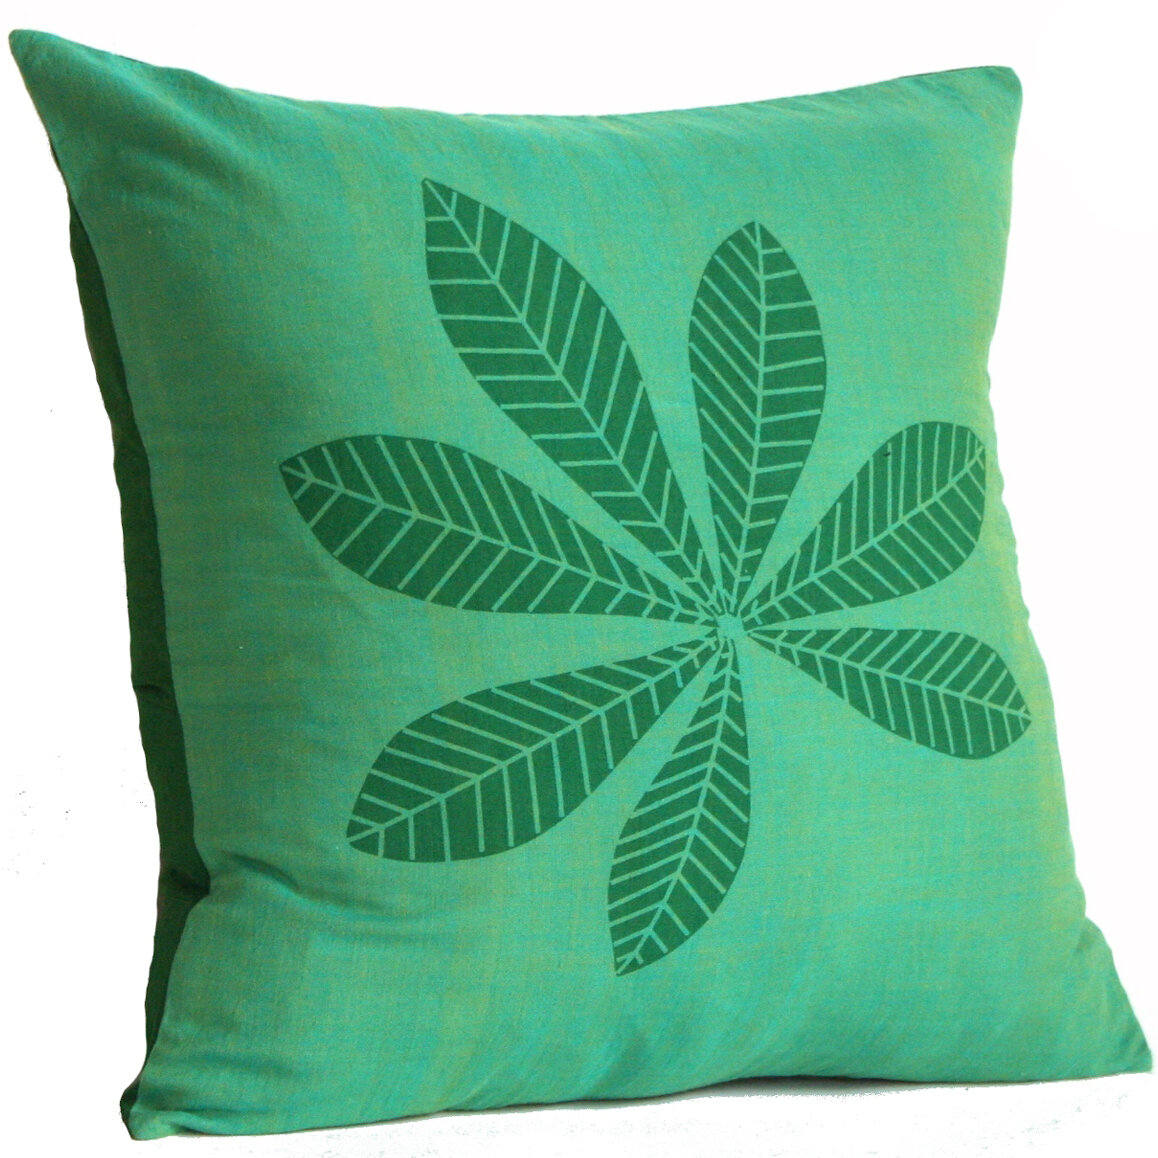 14 Below Sustainable Threads Throw Pillows You Ll Love In 2021 Wayfair